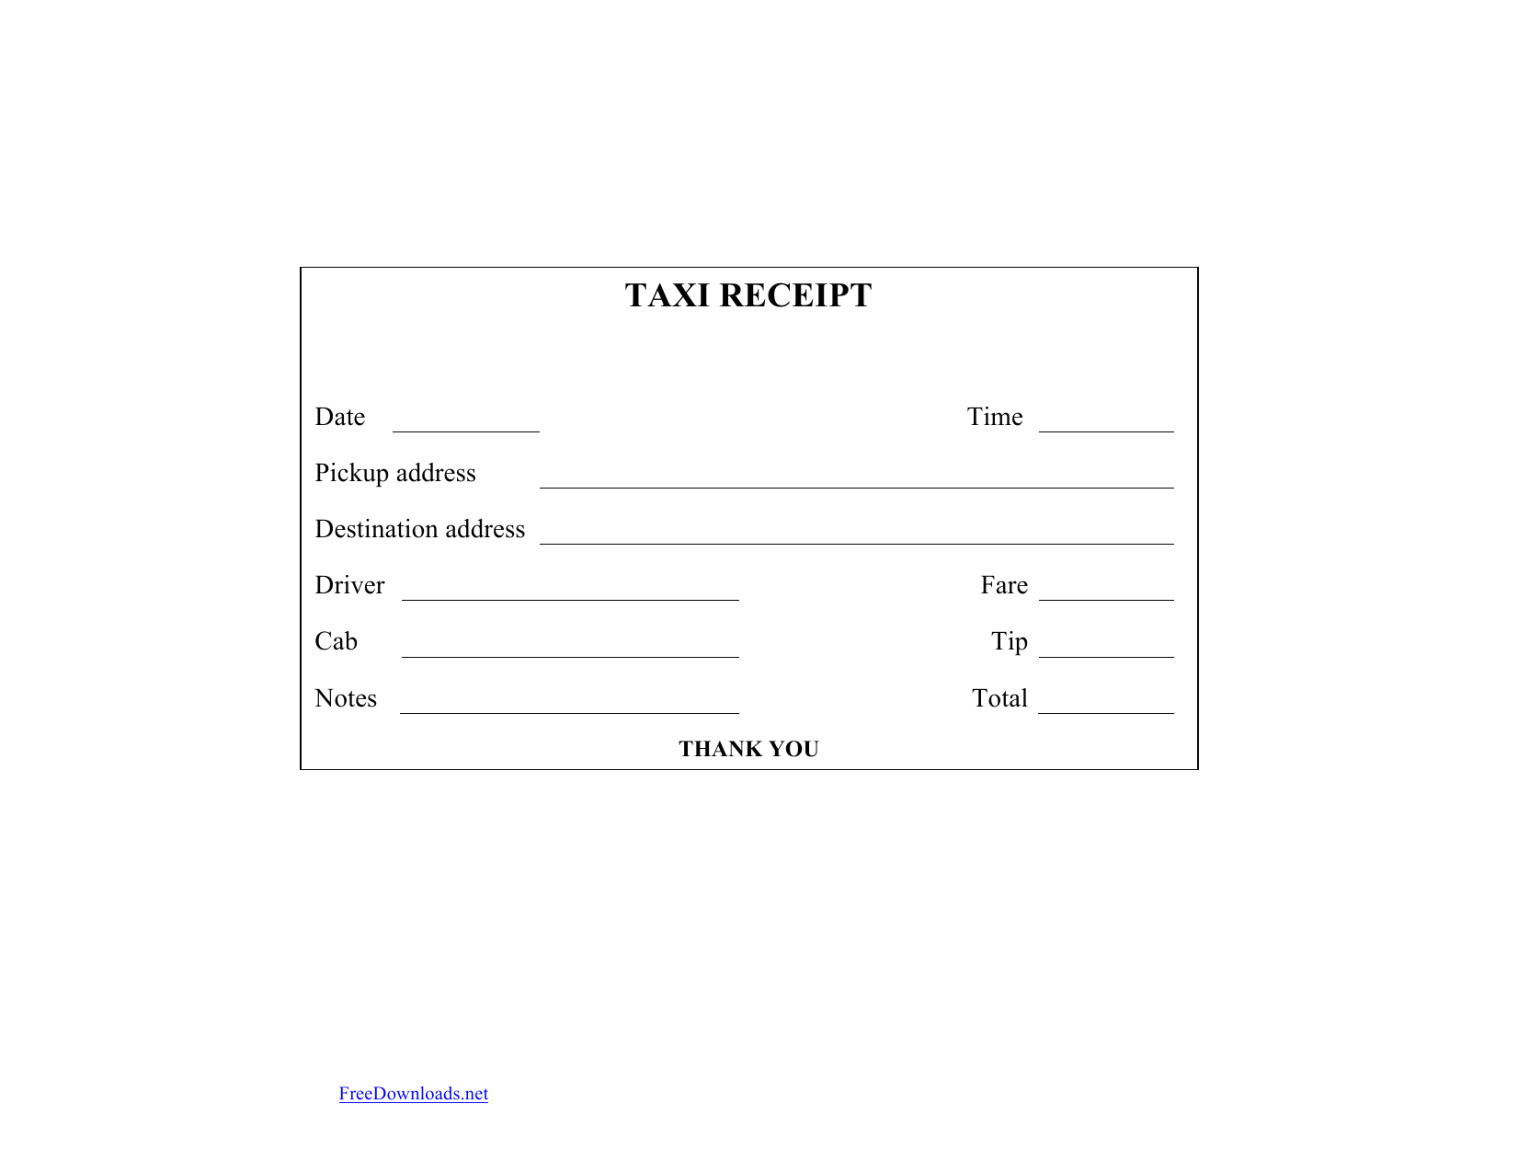 Download Blank Printable Taxi Cab Receipt Template Excel Throughout Blank Taxi Receipt Template